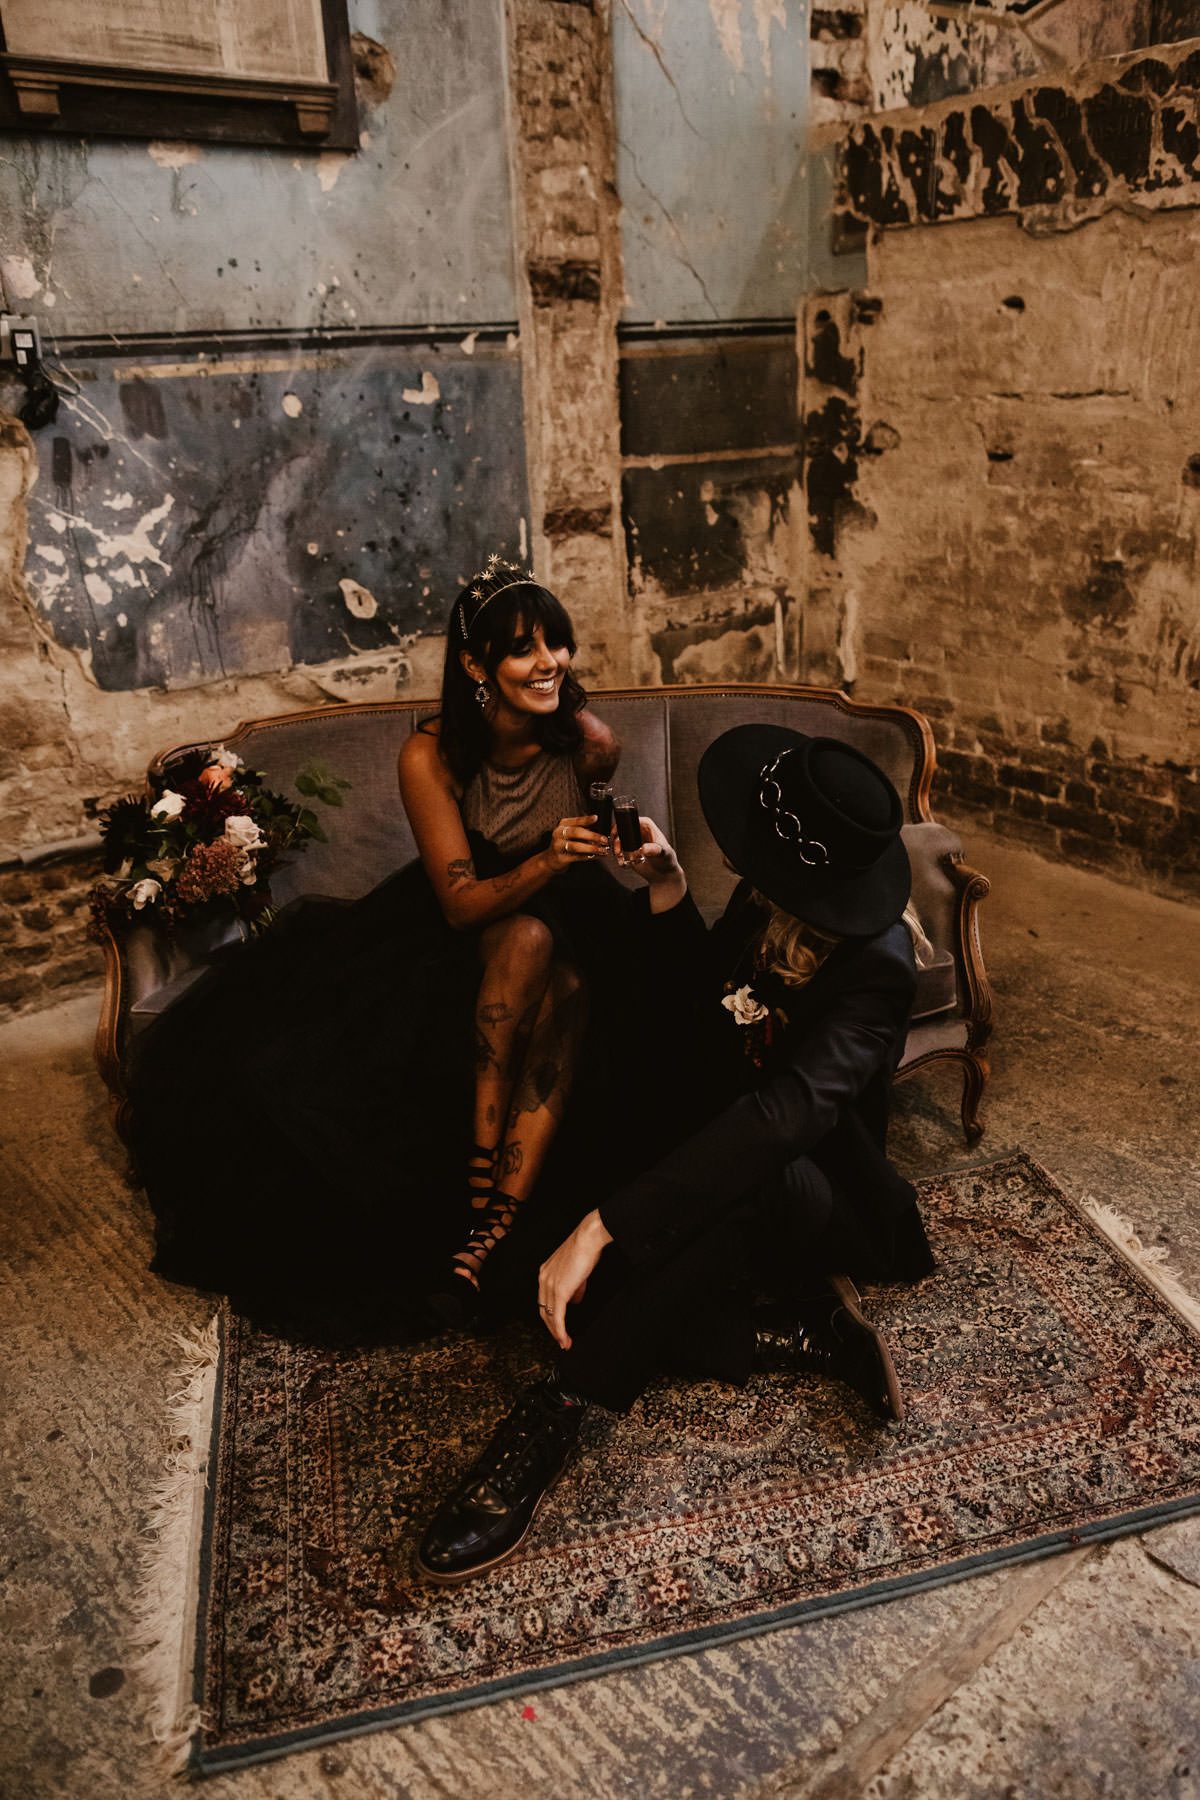 Dark + Curious Wedding Inspiration at The Asylum Chapel, London